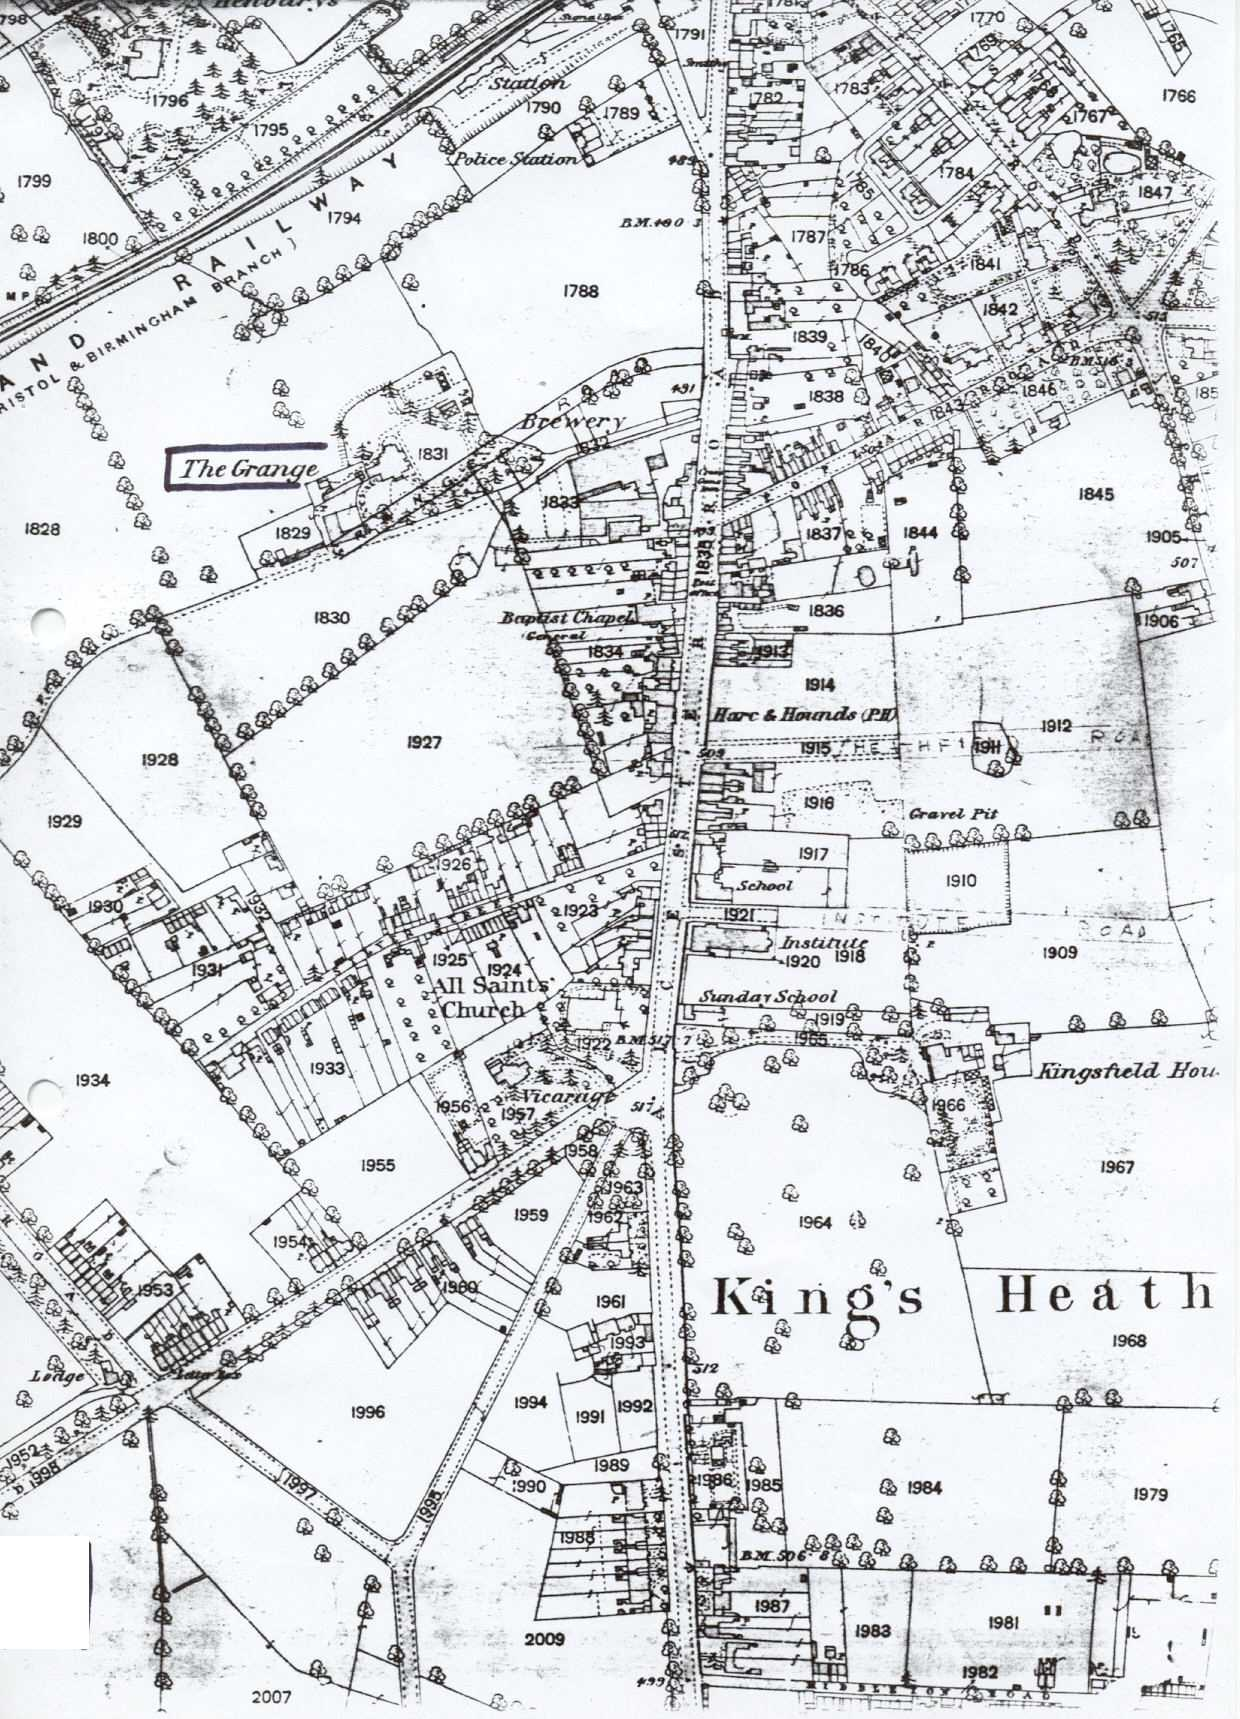 King's Heath map of 1887